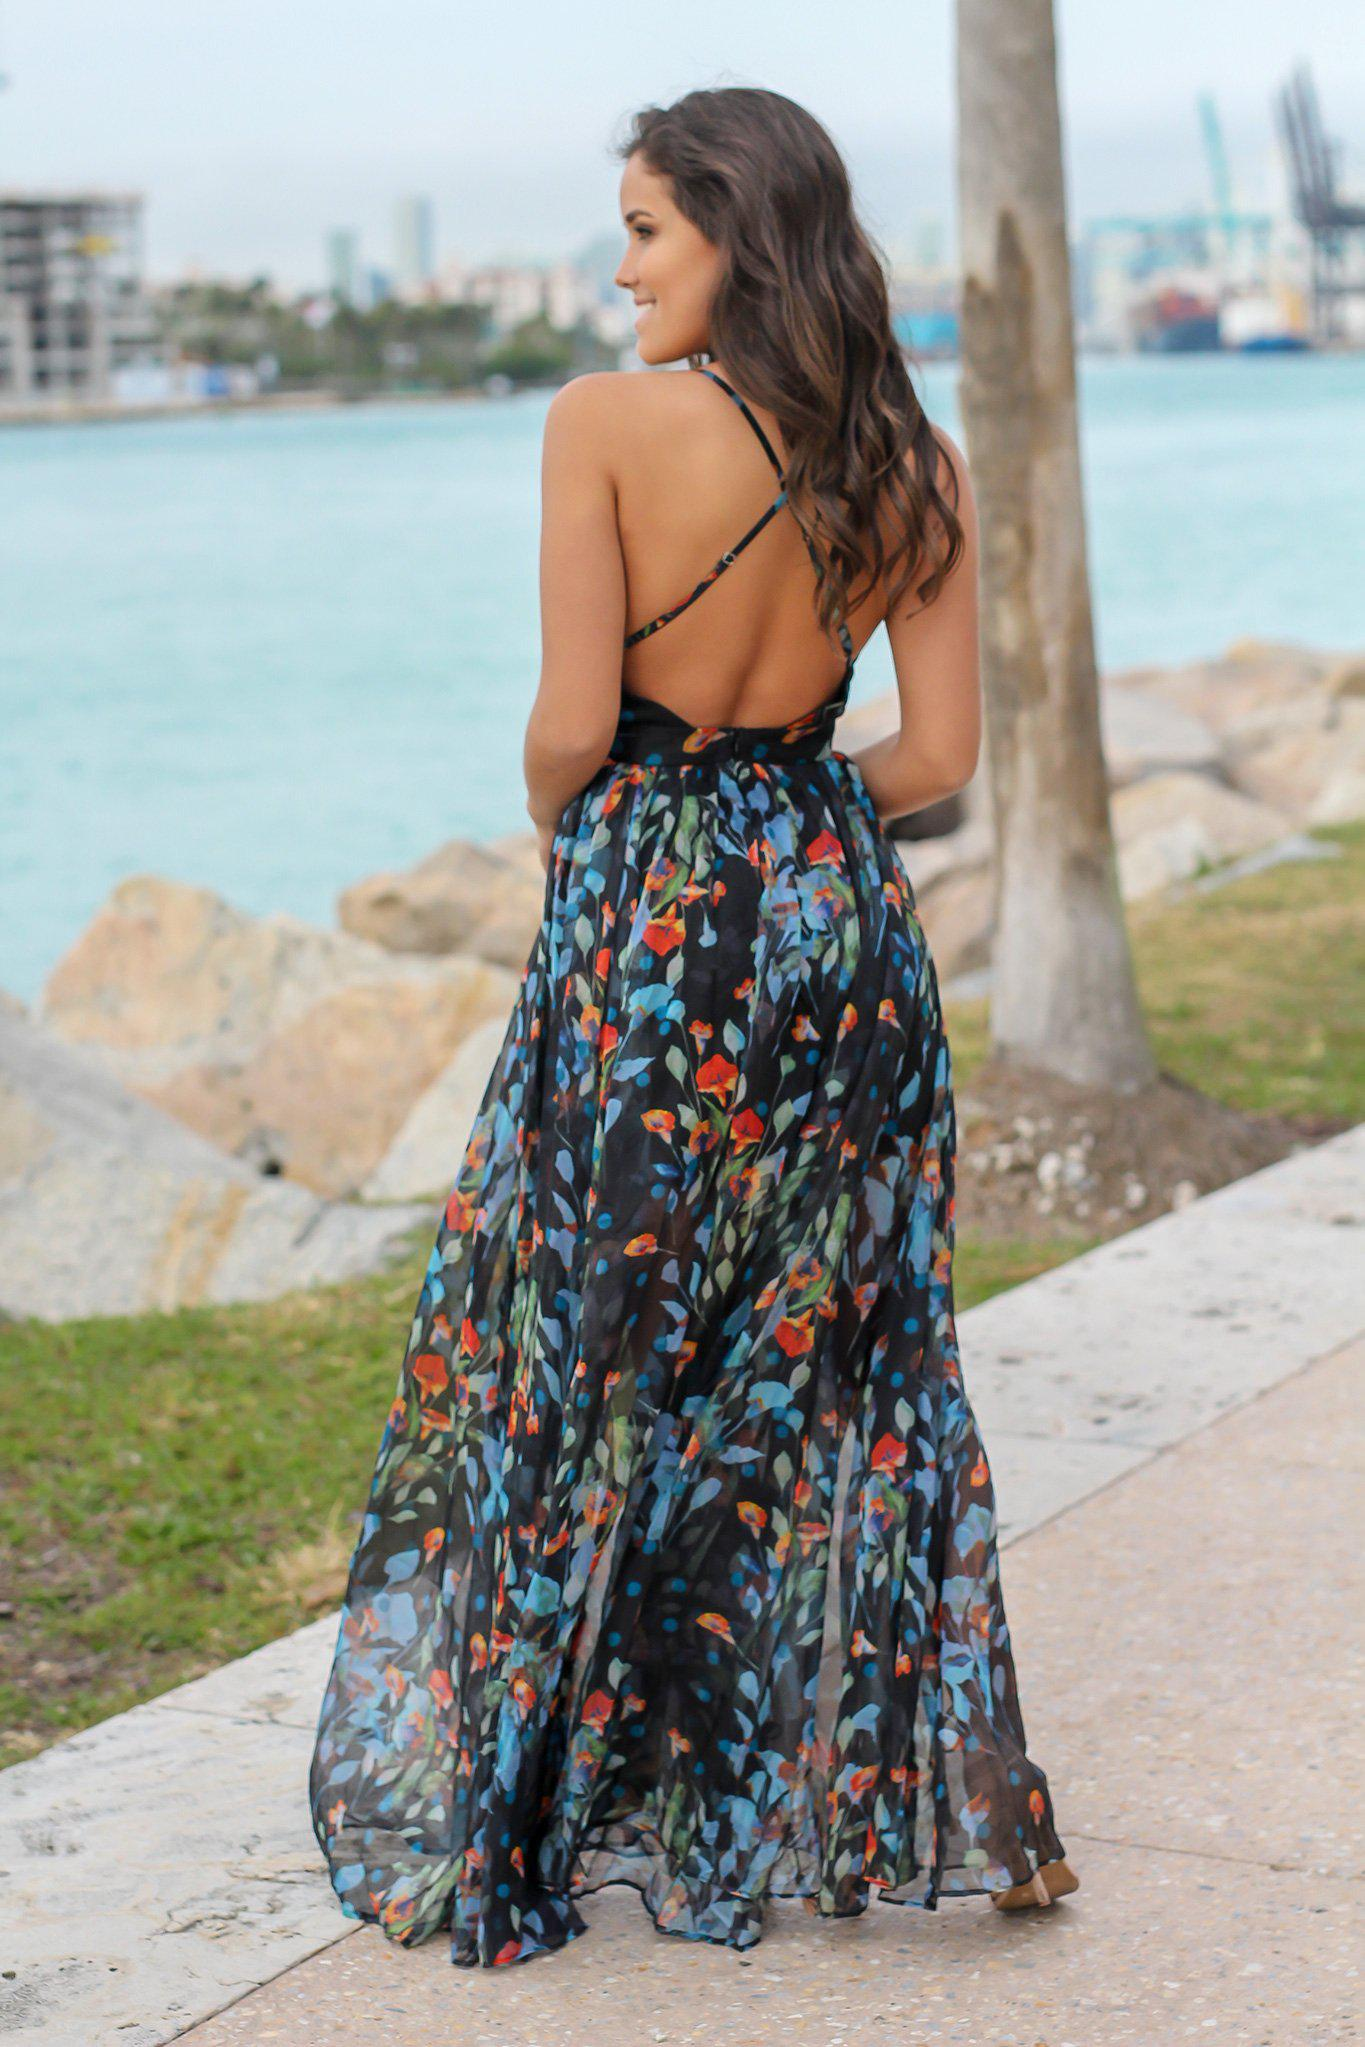 Black and Blue Floral Maxi Dress with Criss Cross Back